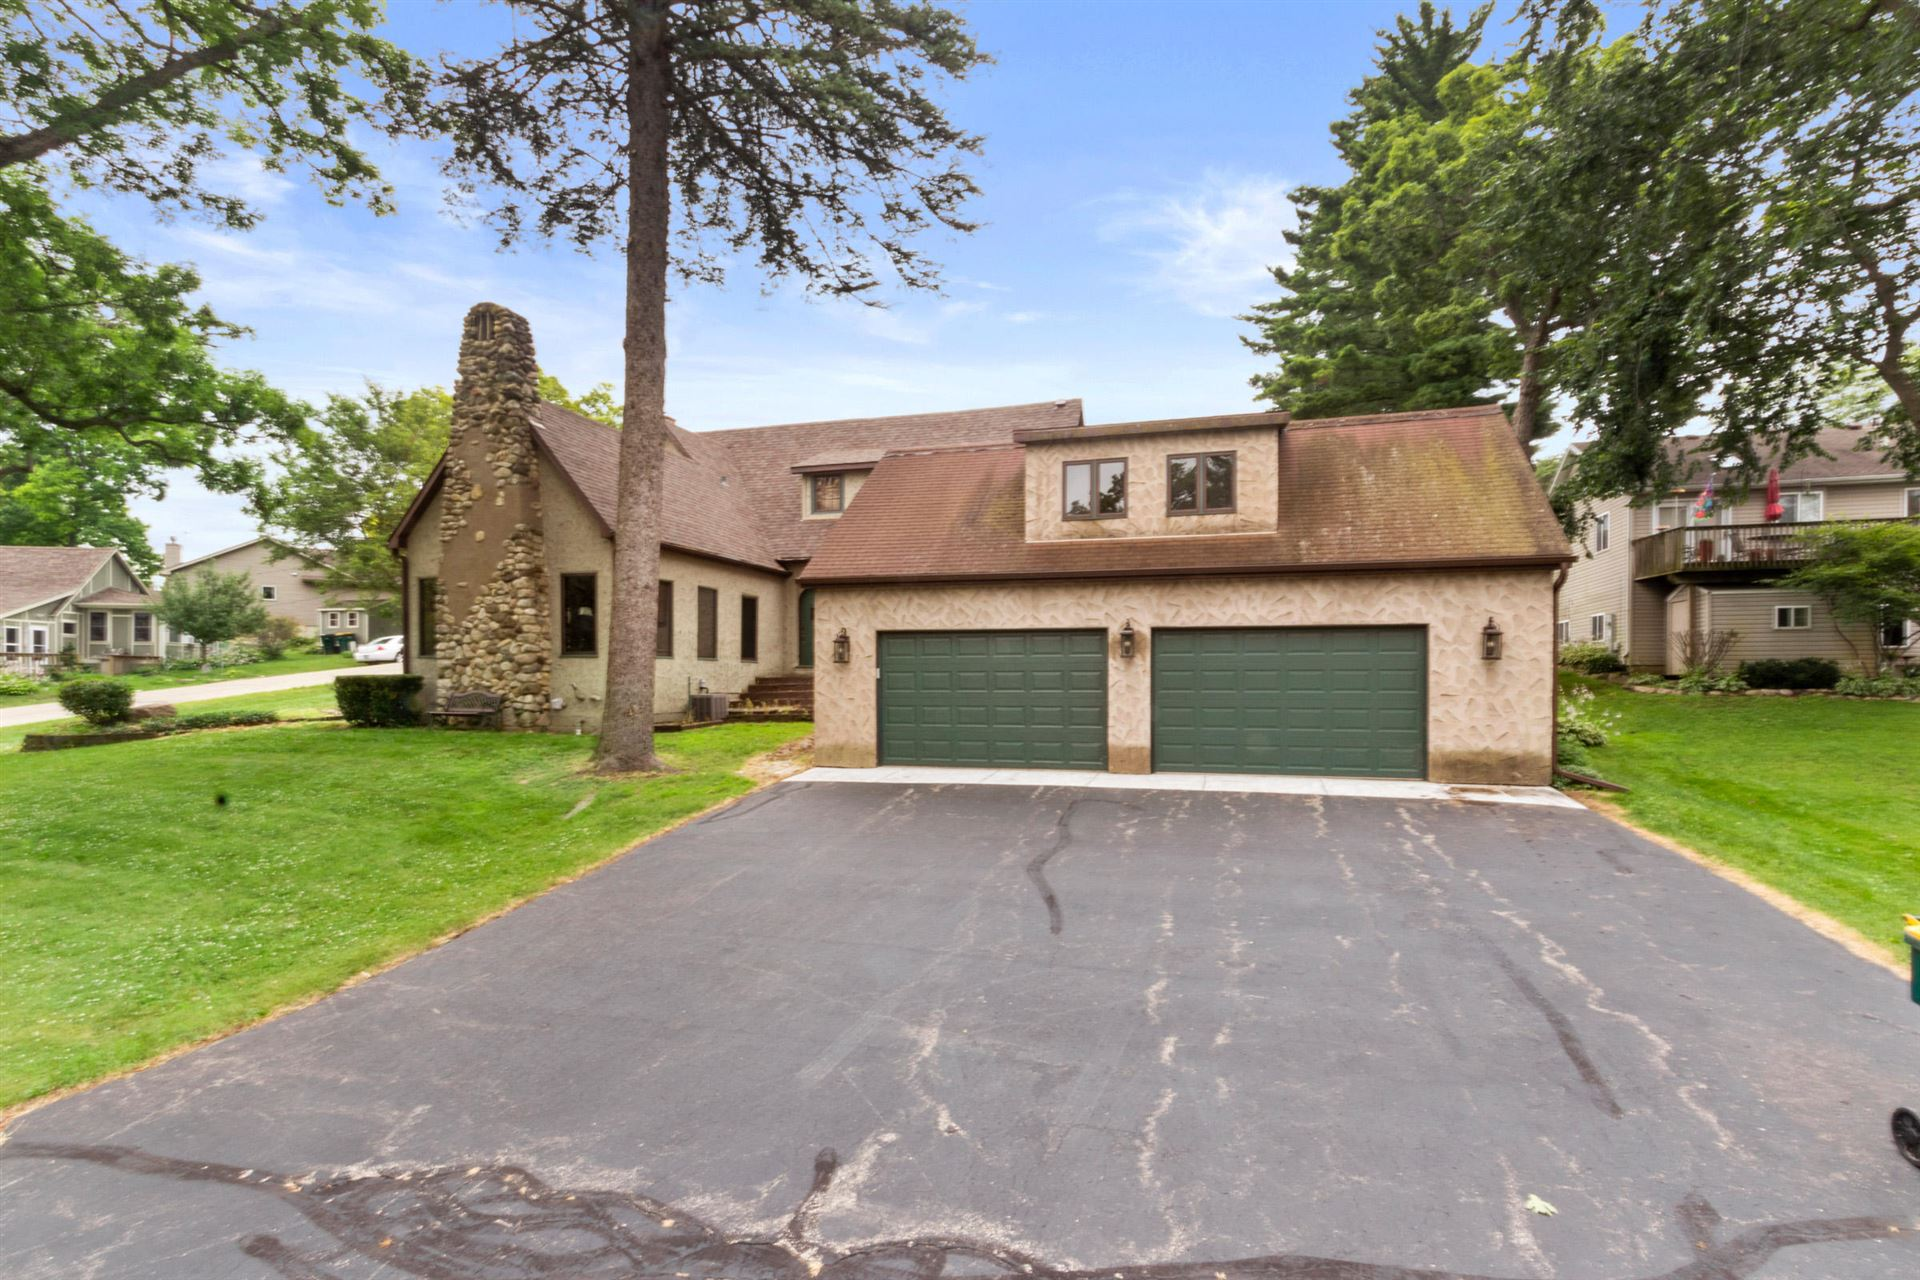 10204 404th Ave, Randall, WI 53128 - #: 1686951